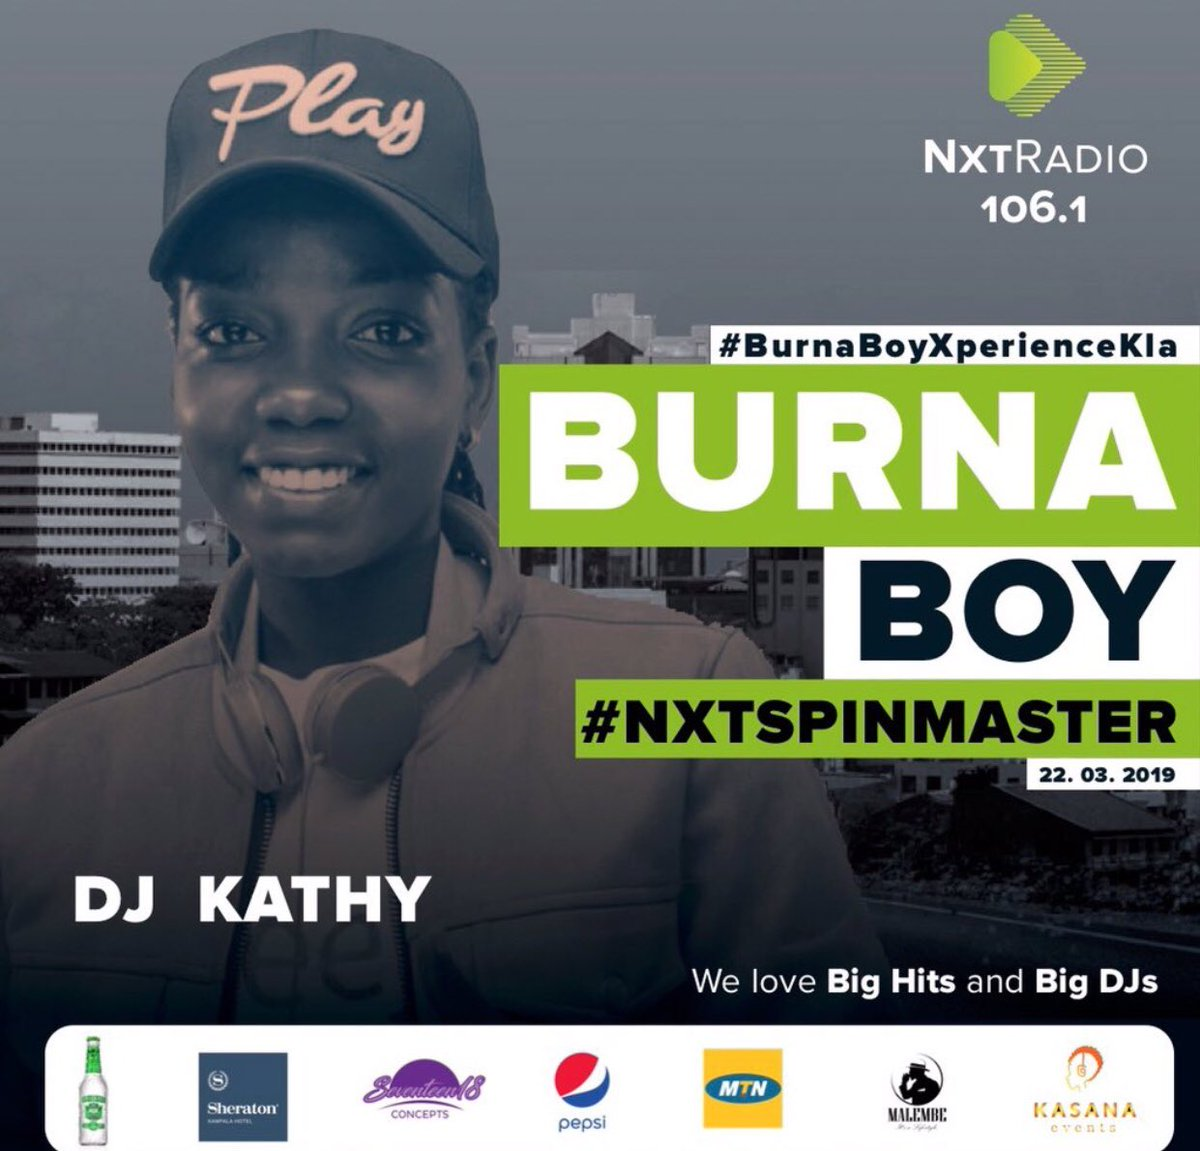 #BurnaBoyXperienceKLA #NxtSpinMaster  Kampala Here i come.. let&#39;s Make this Happen Superstar FemaleDJ256. Let the Music Speak <br>http://pic.twitter.com/fqZosenF7K